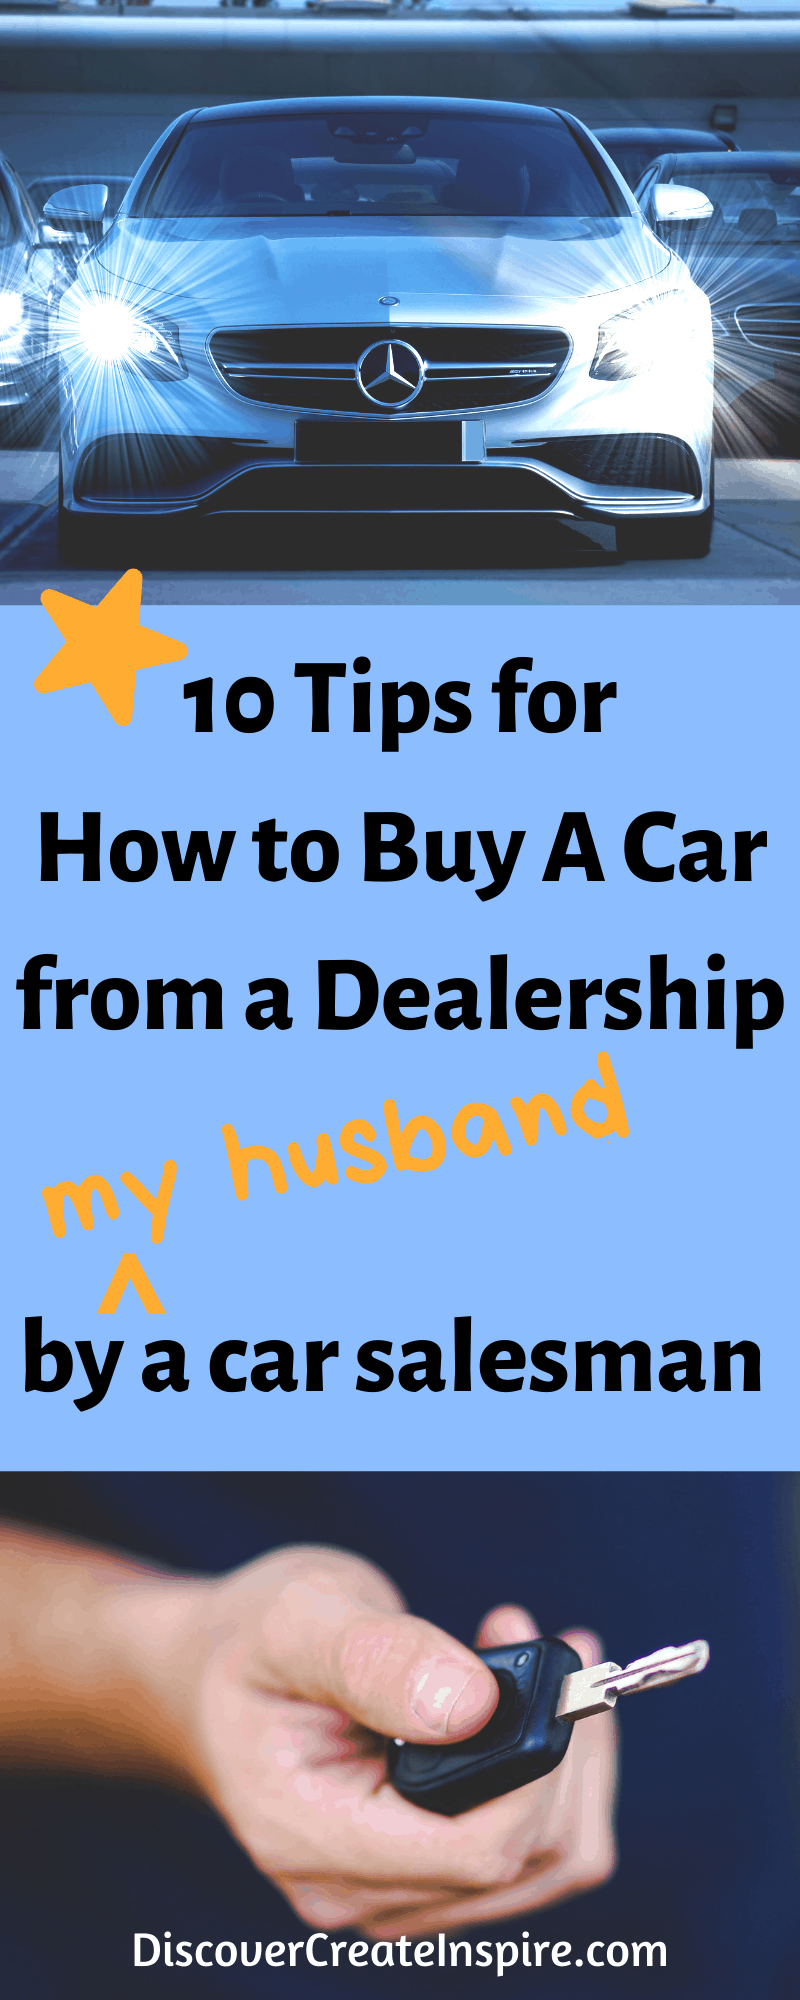 10 Tips for How to Buy a Car from a Dealership DiscoverCreateInspire.com #buyacar #howtobuyacar